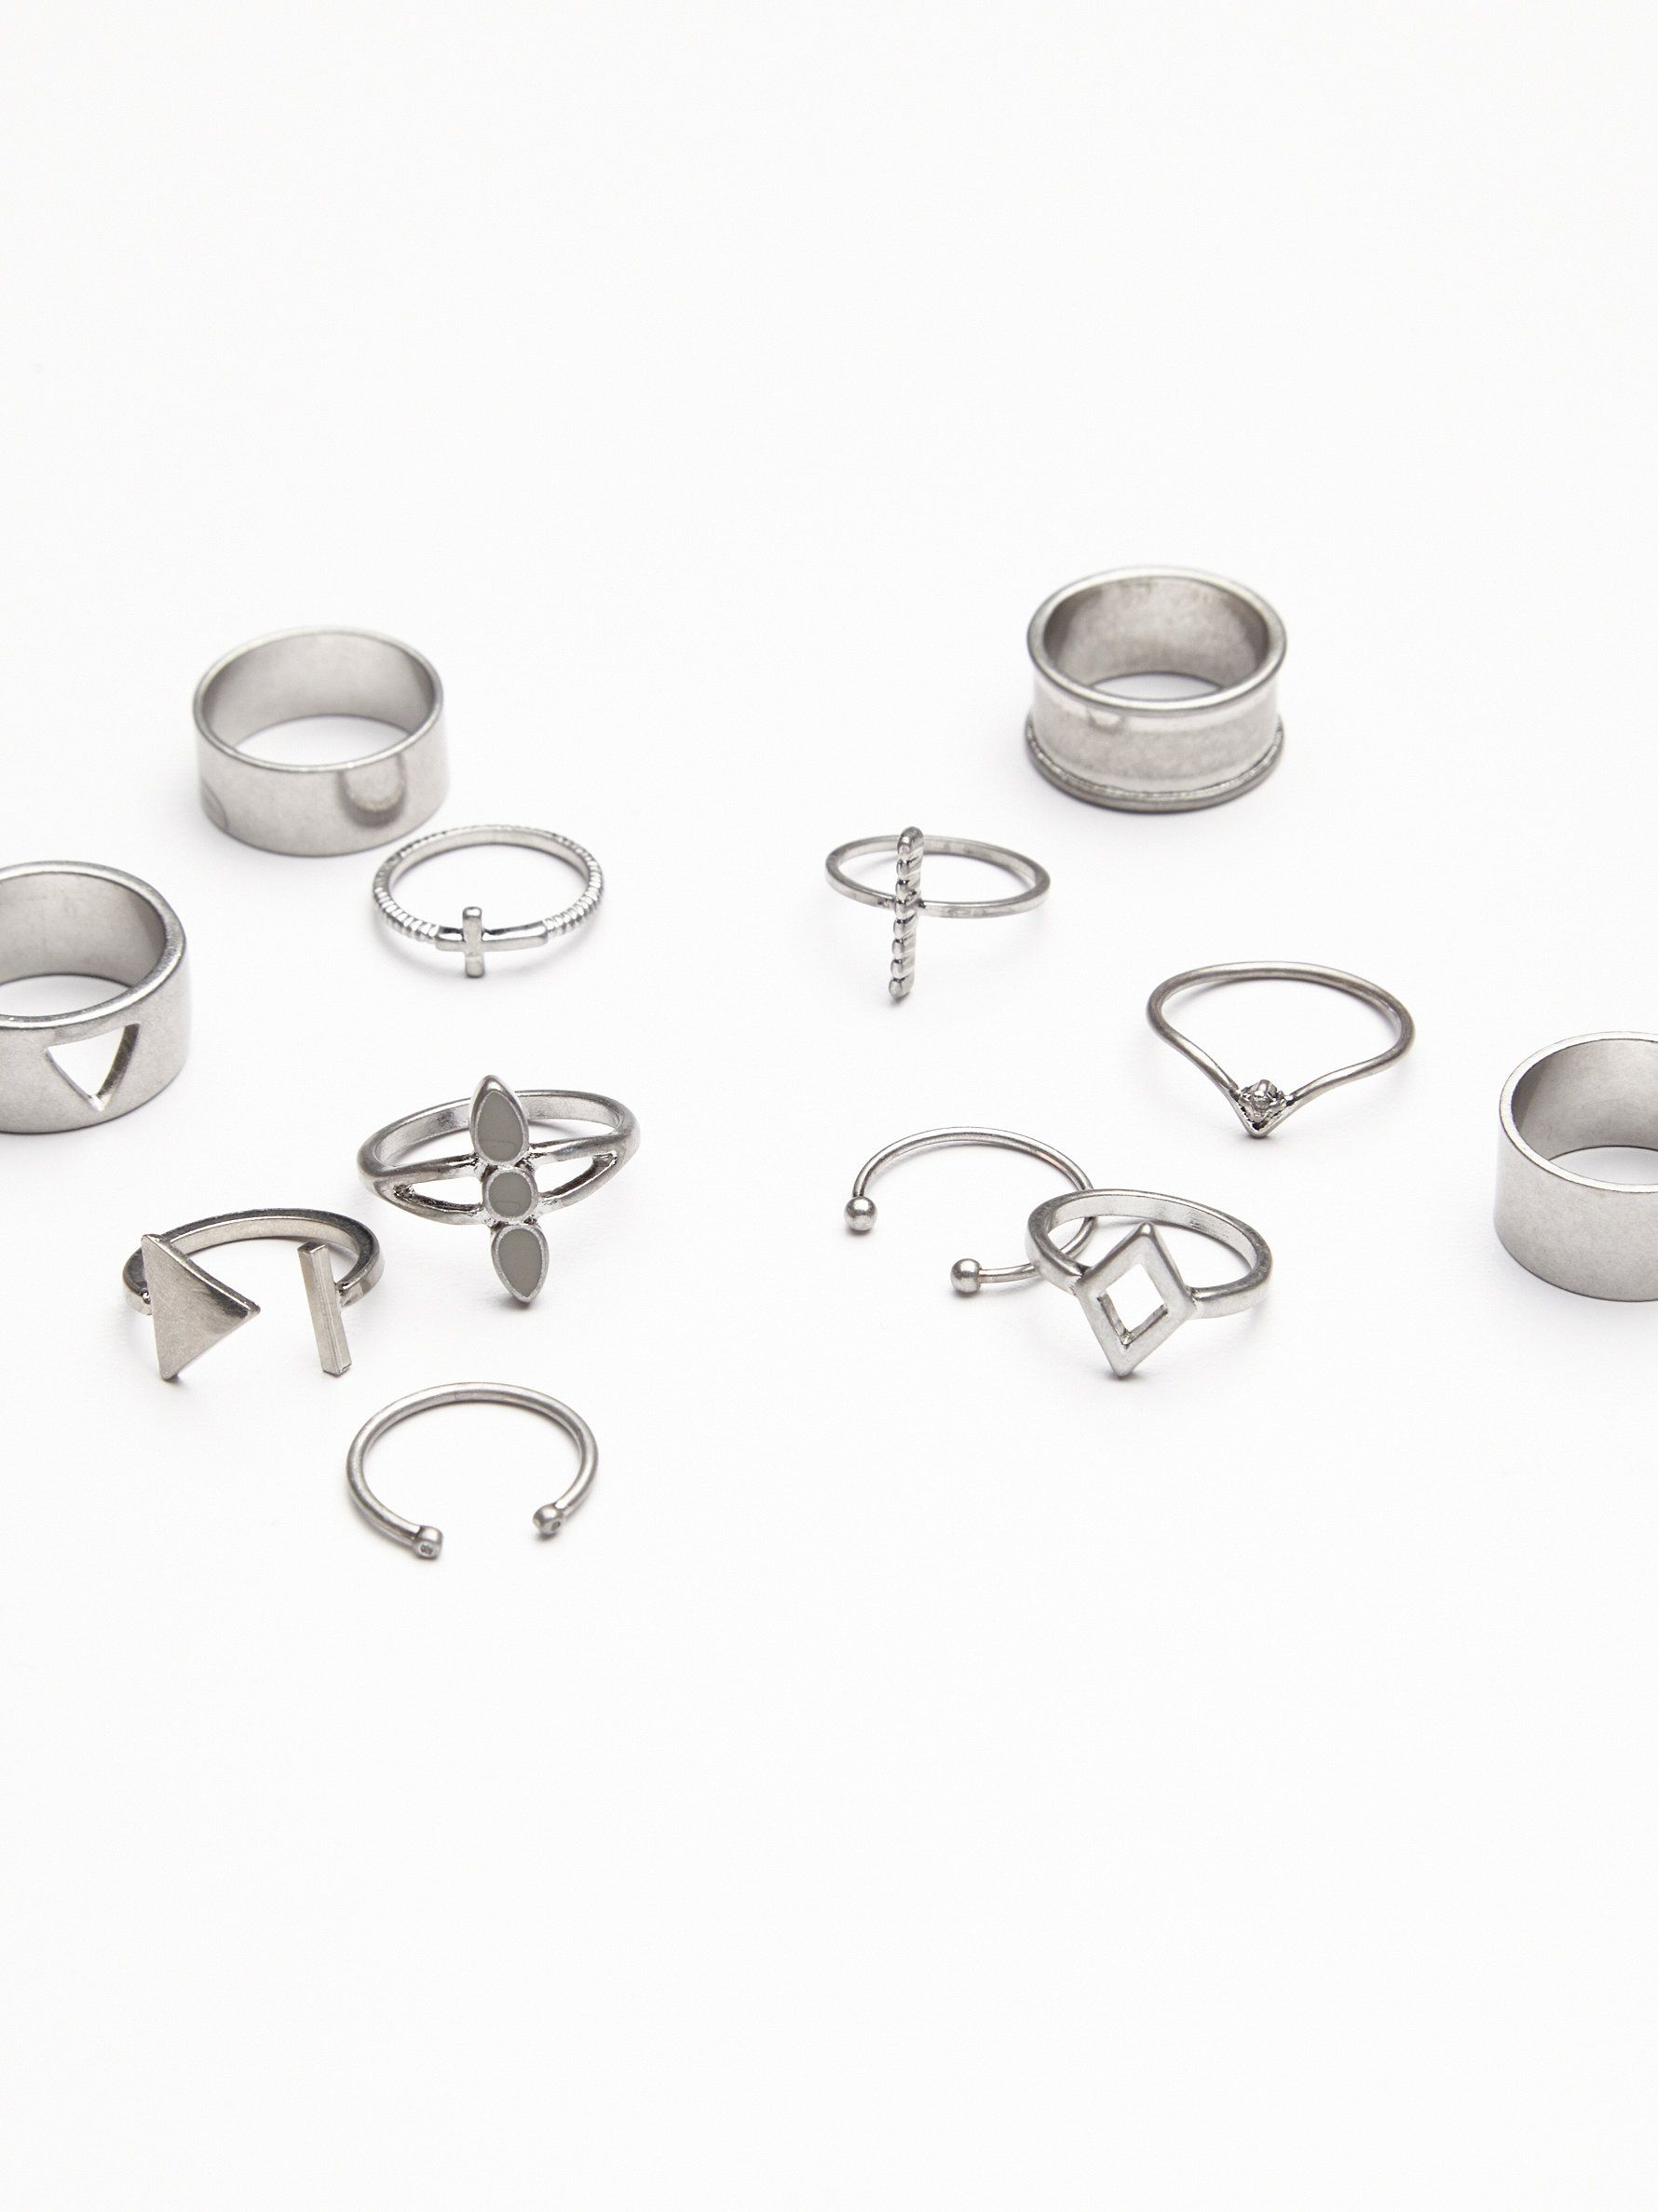 Mega Mix N Match Ring Set   Wear one or wear them all stack them high or one of every finger, the possibilities are endless with the mix and match ring set.